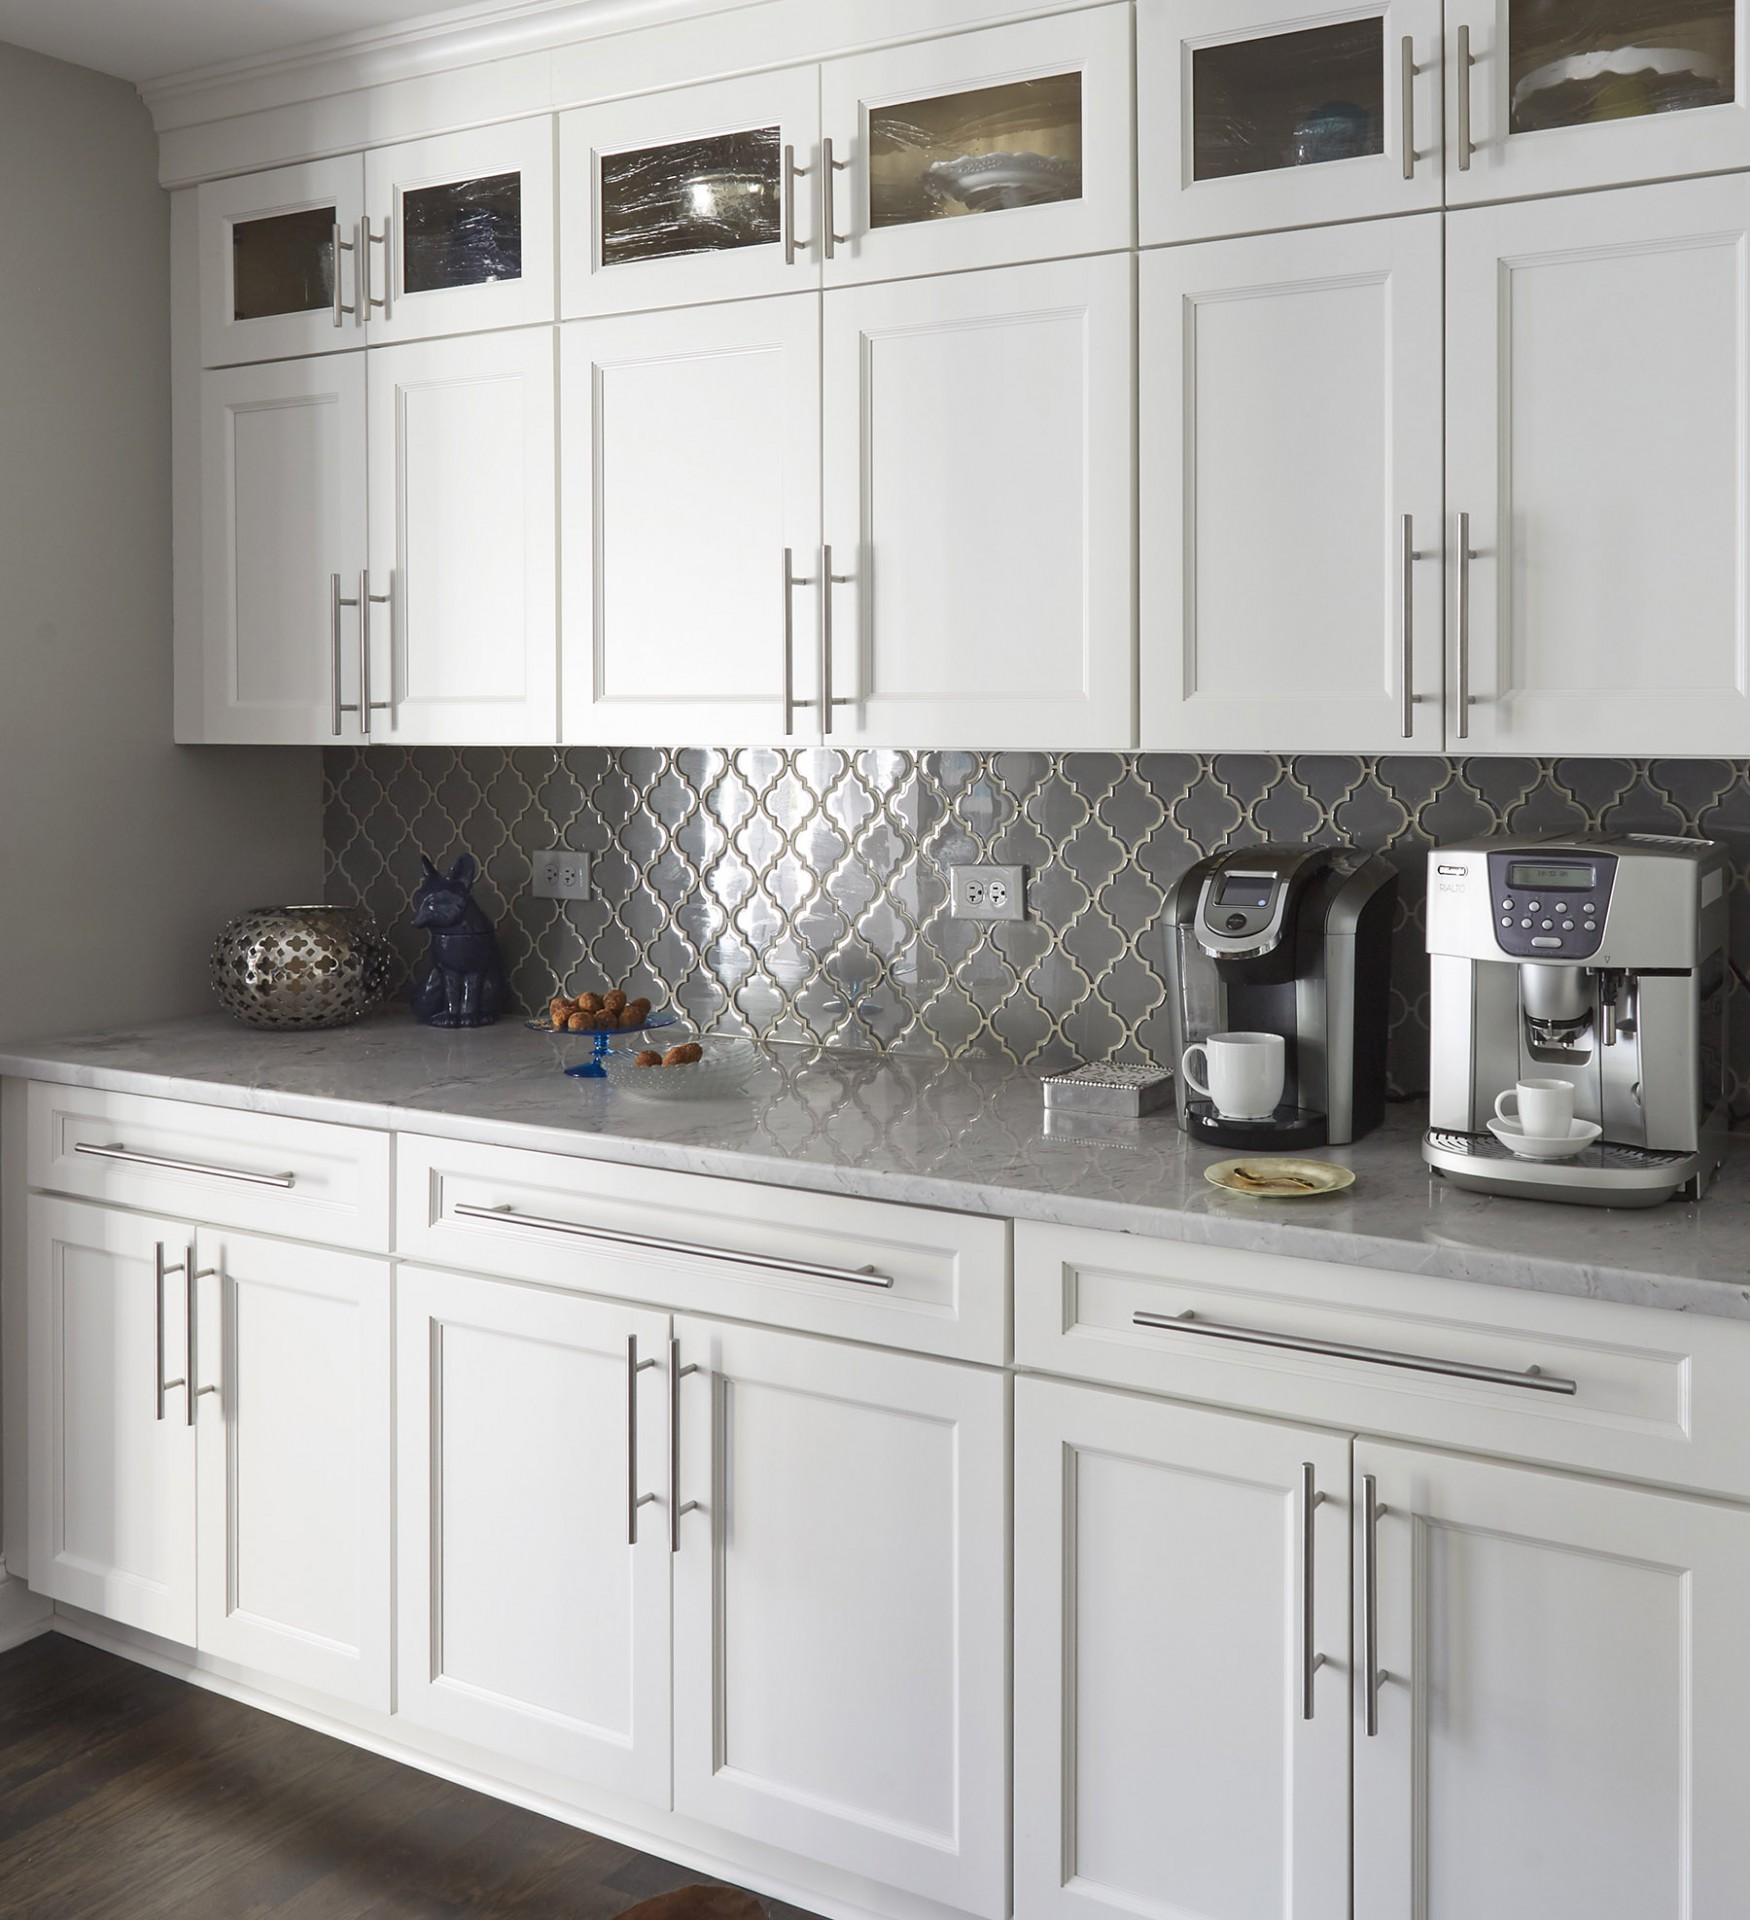 wellborn kitchen cabinets and dining room chairs custom cabinetry design blog cabinet dealers